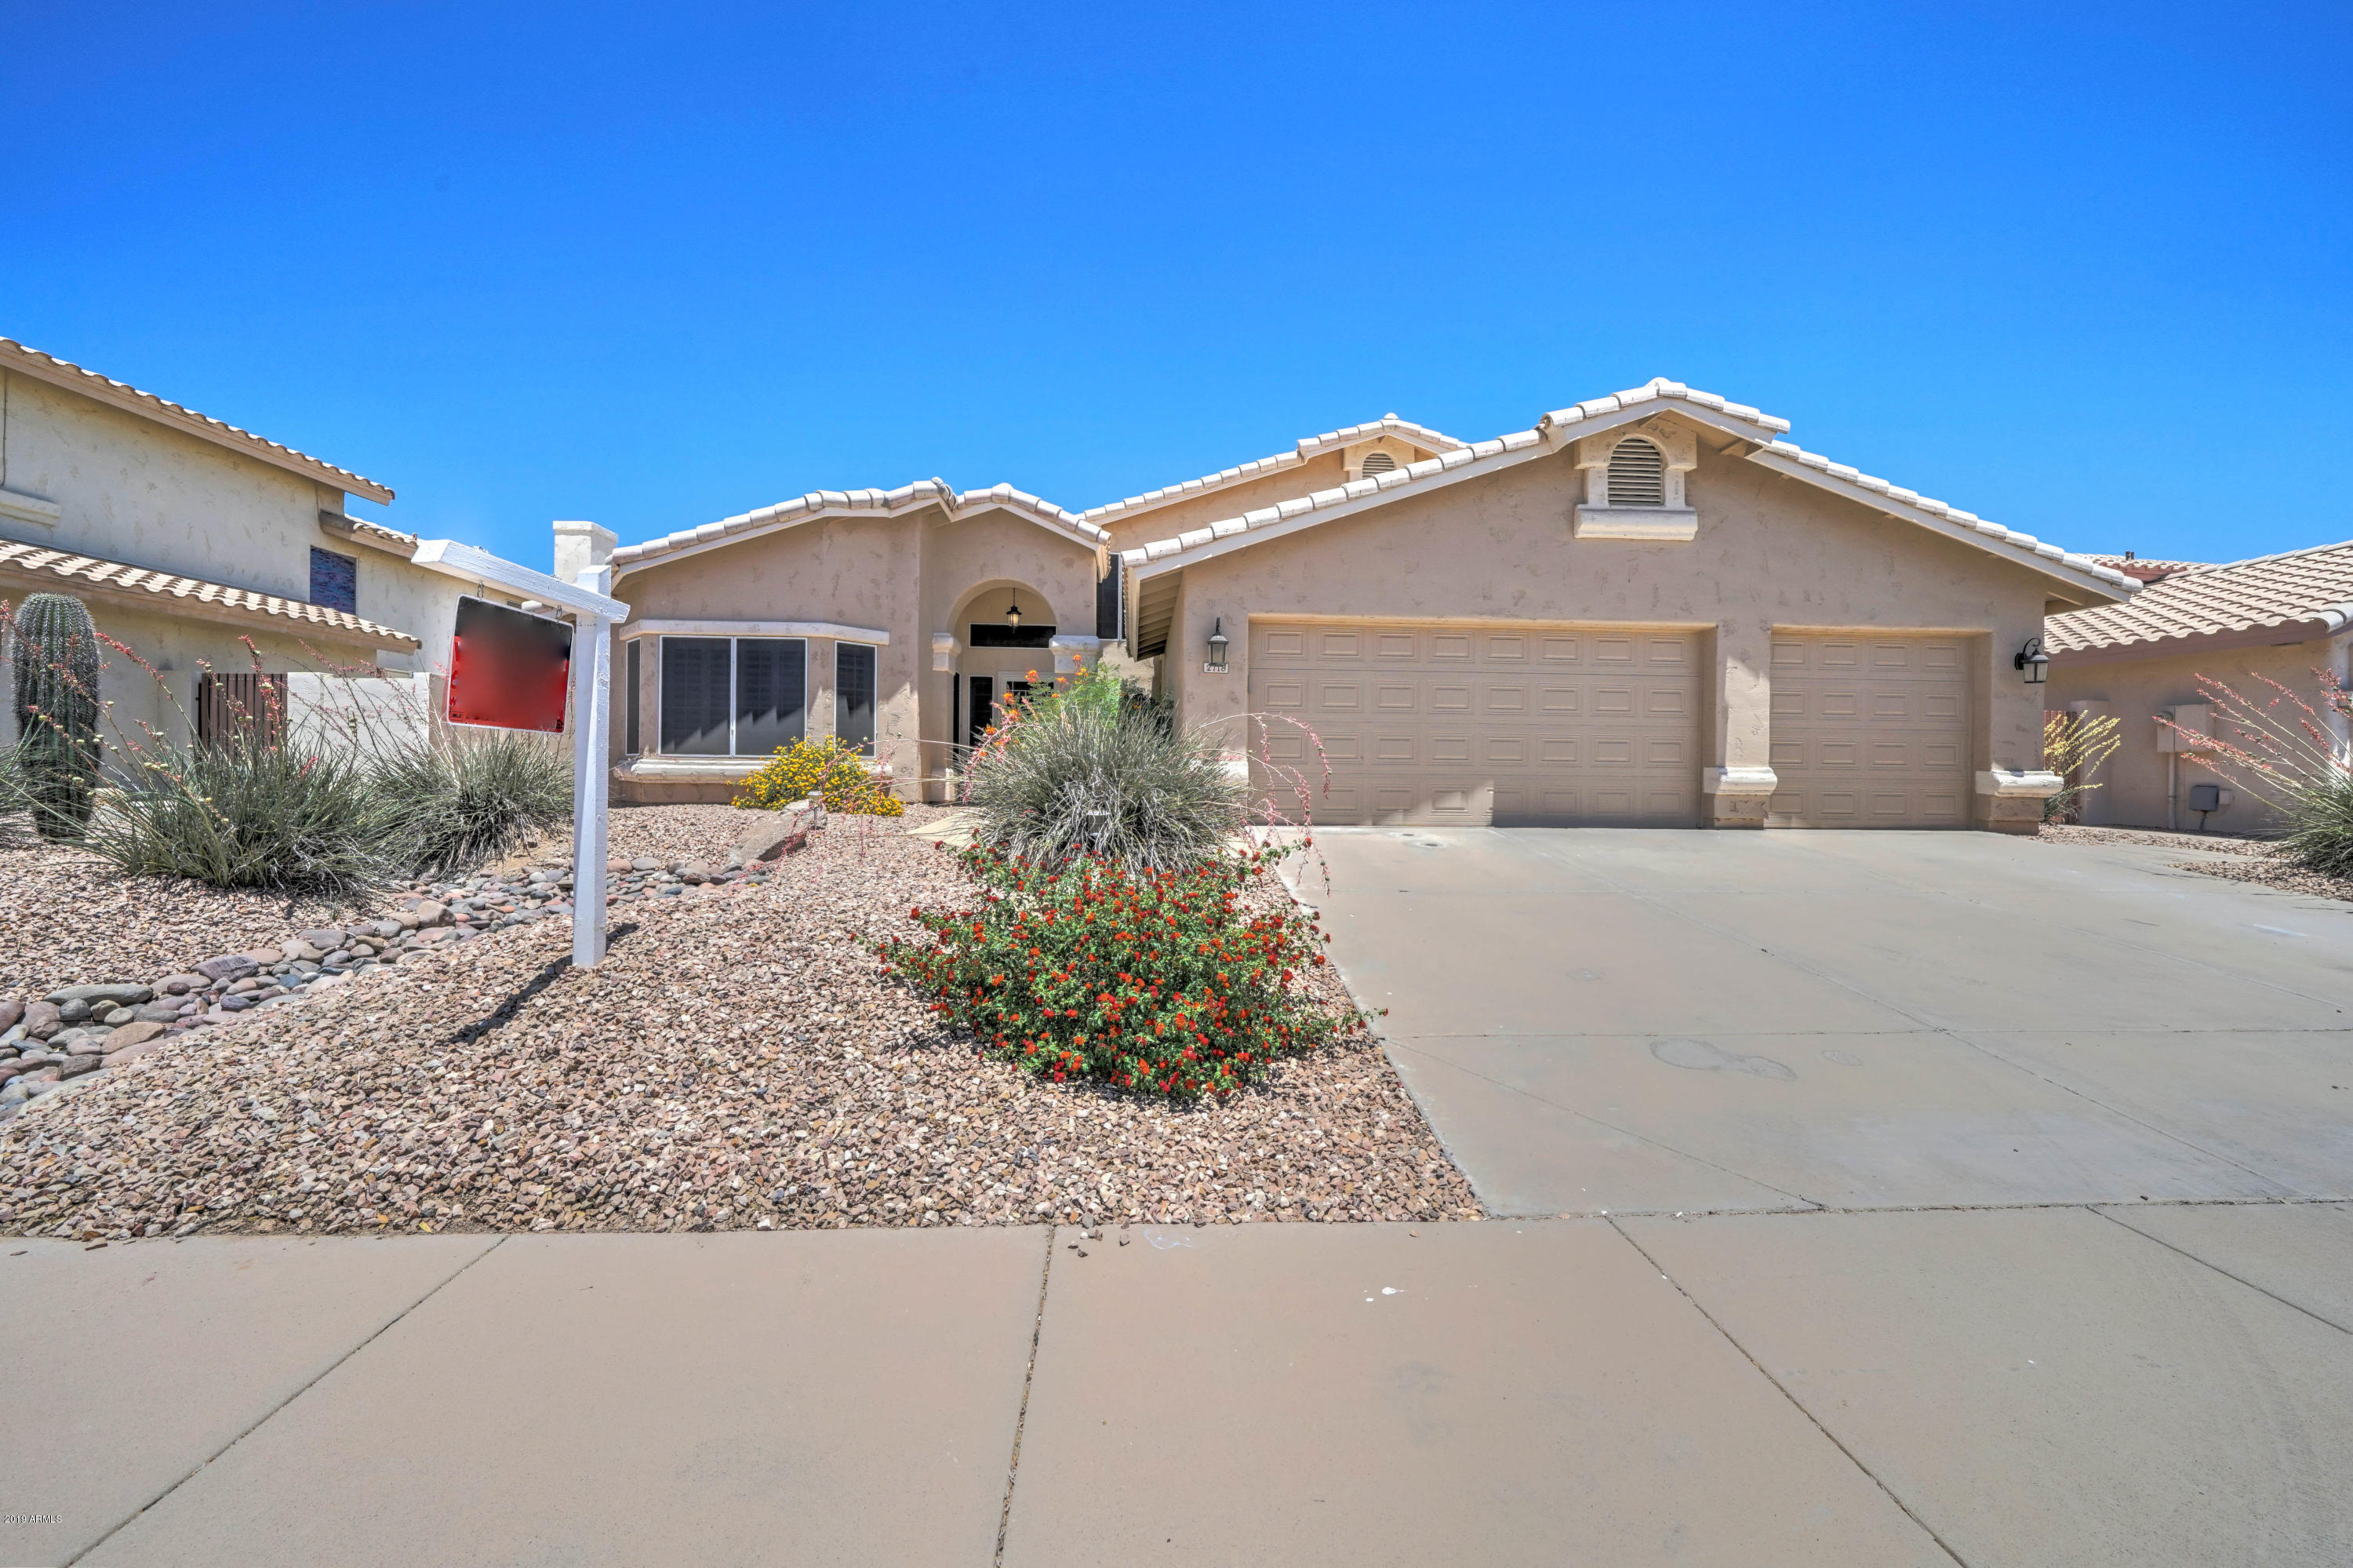 Photo of 2718 E SOUTH FORK Drive, Phoenix, AZ 85048